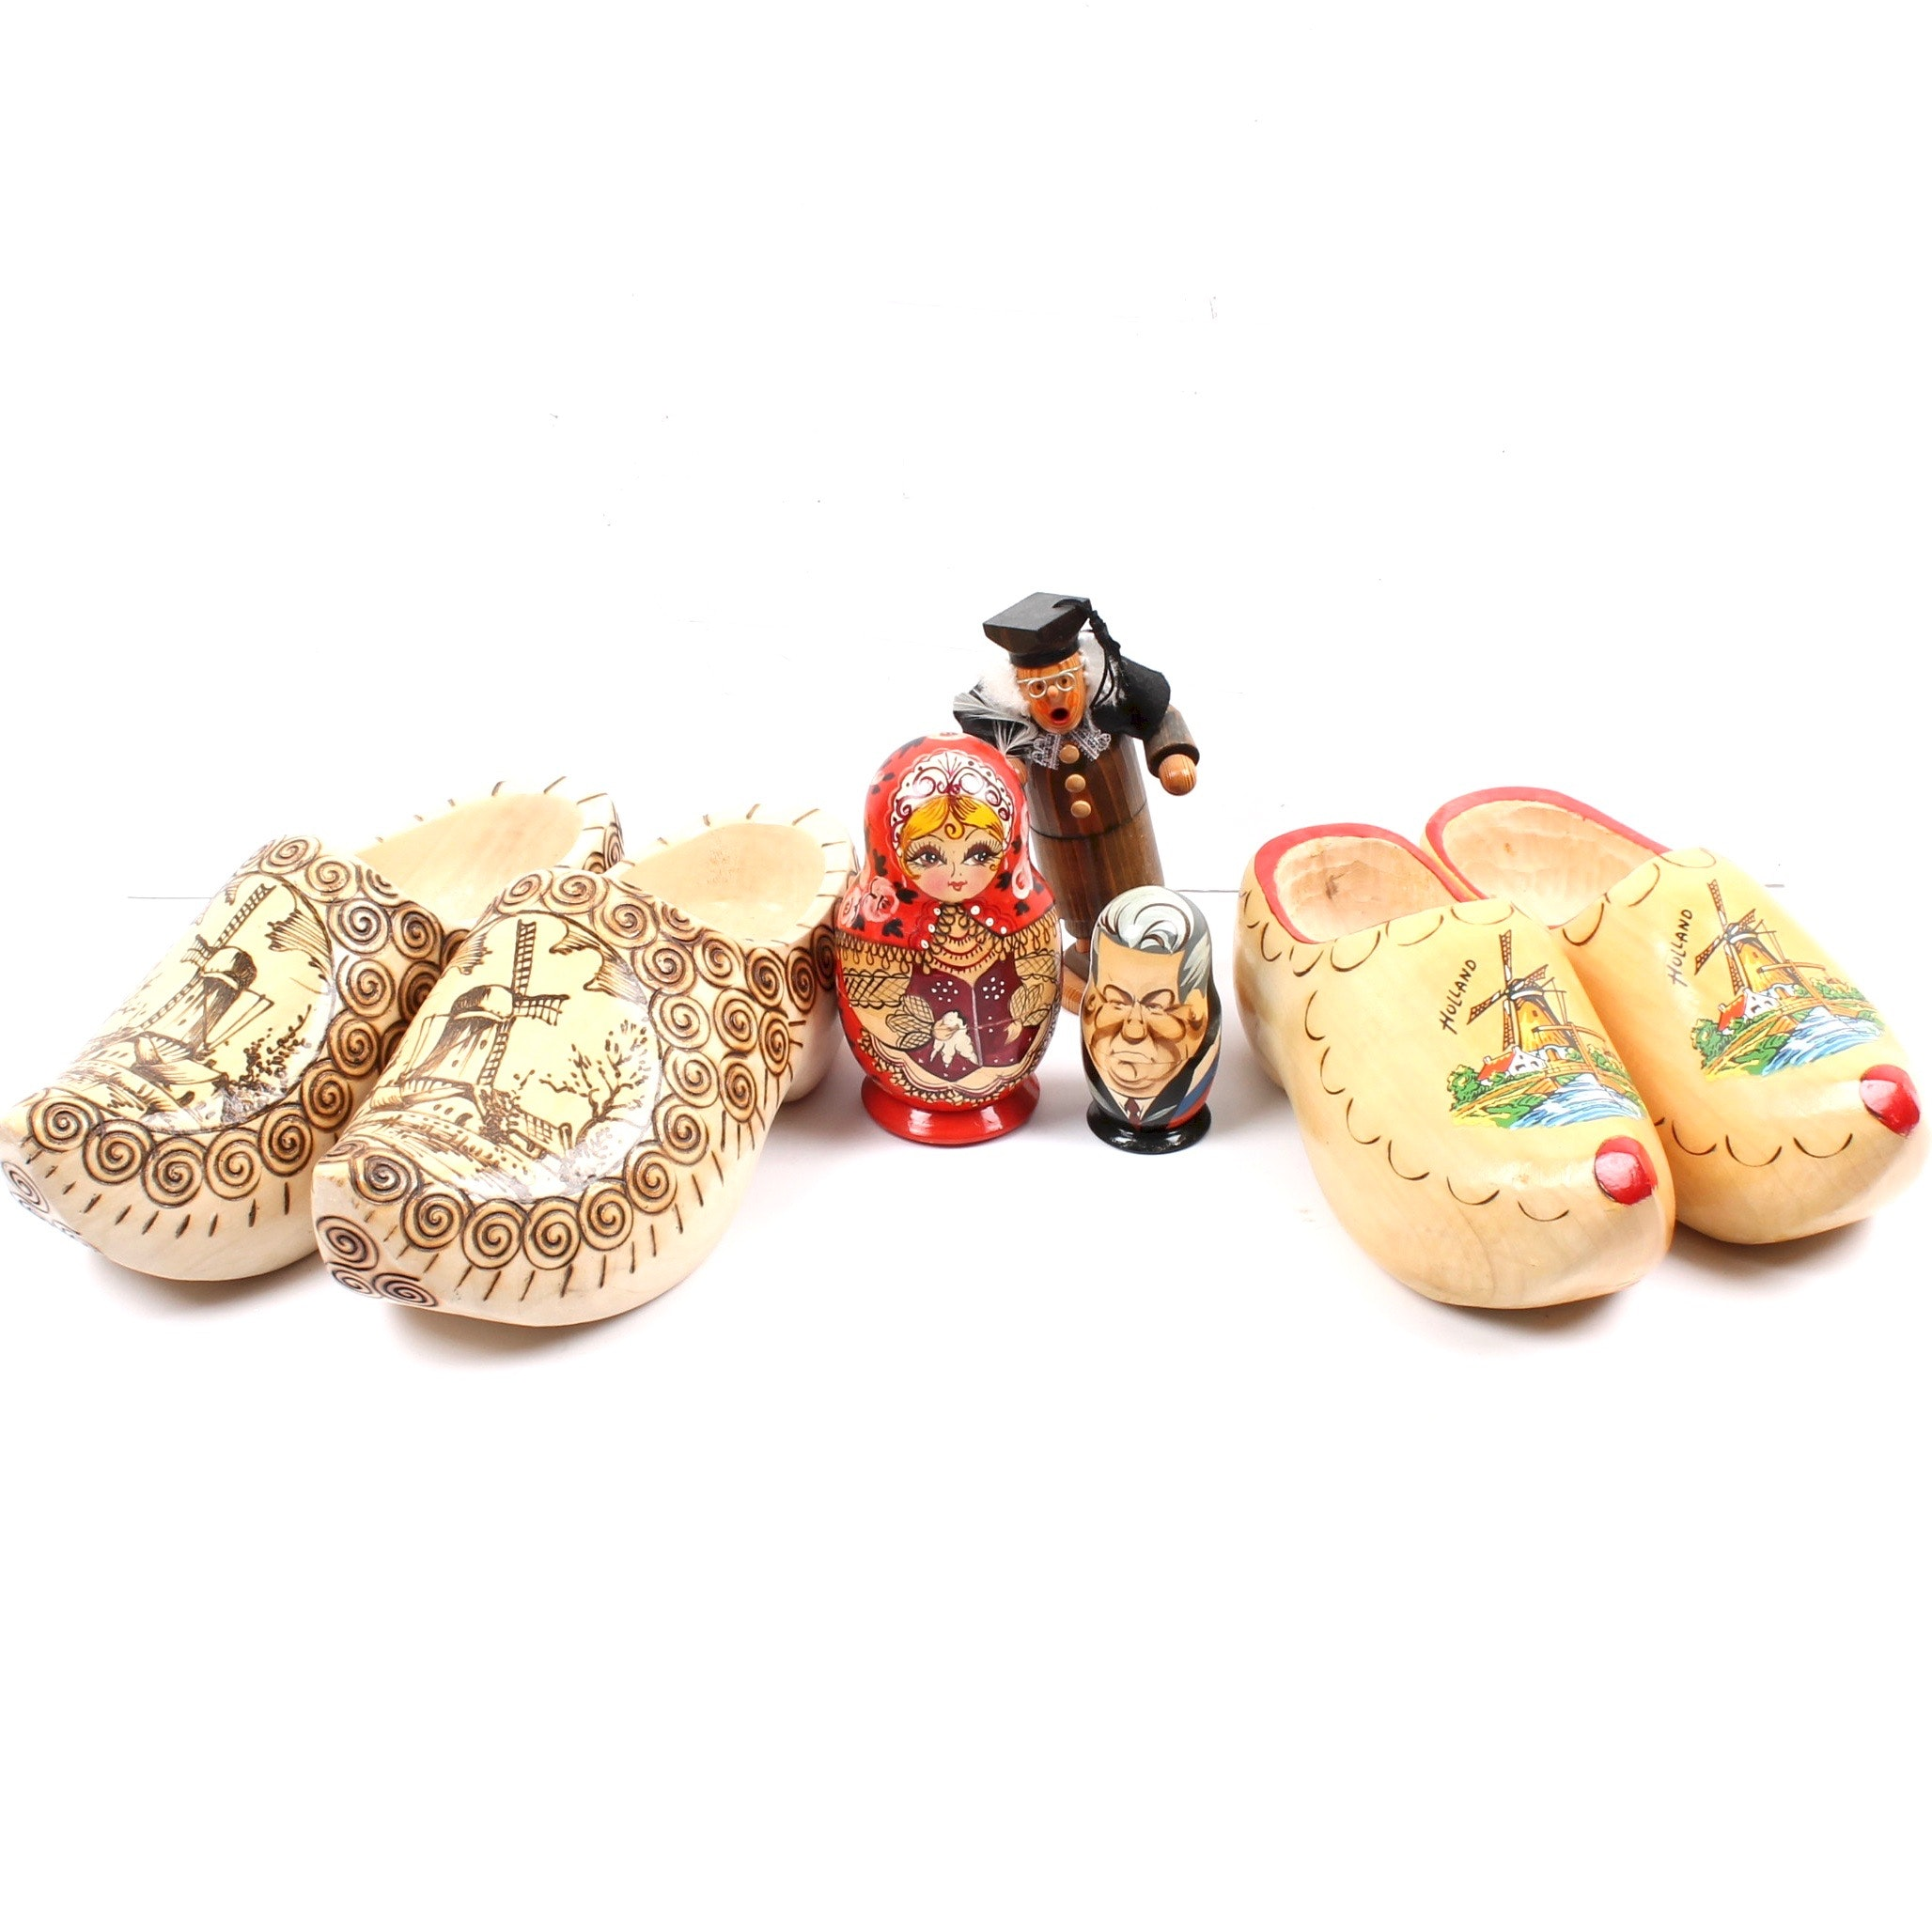 Handcrafted Wood Shoes, Matryoshka Dolls, and German Figural